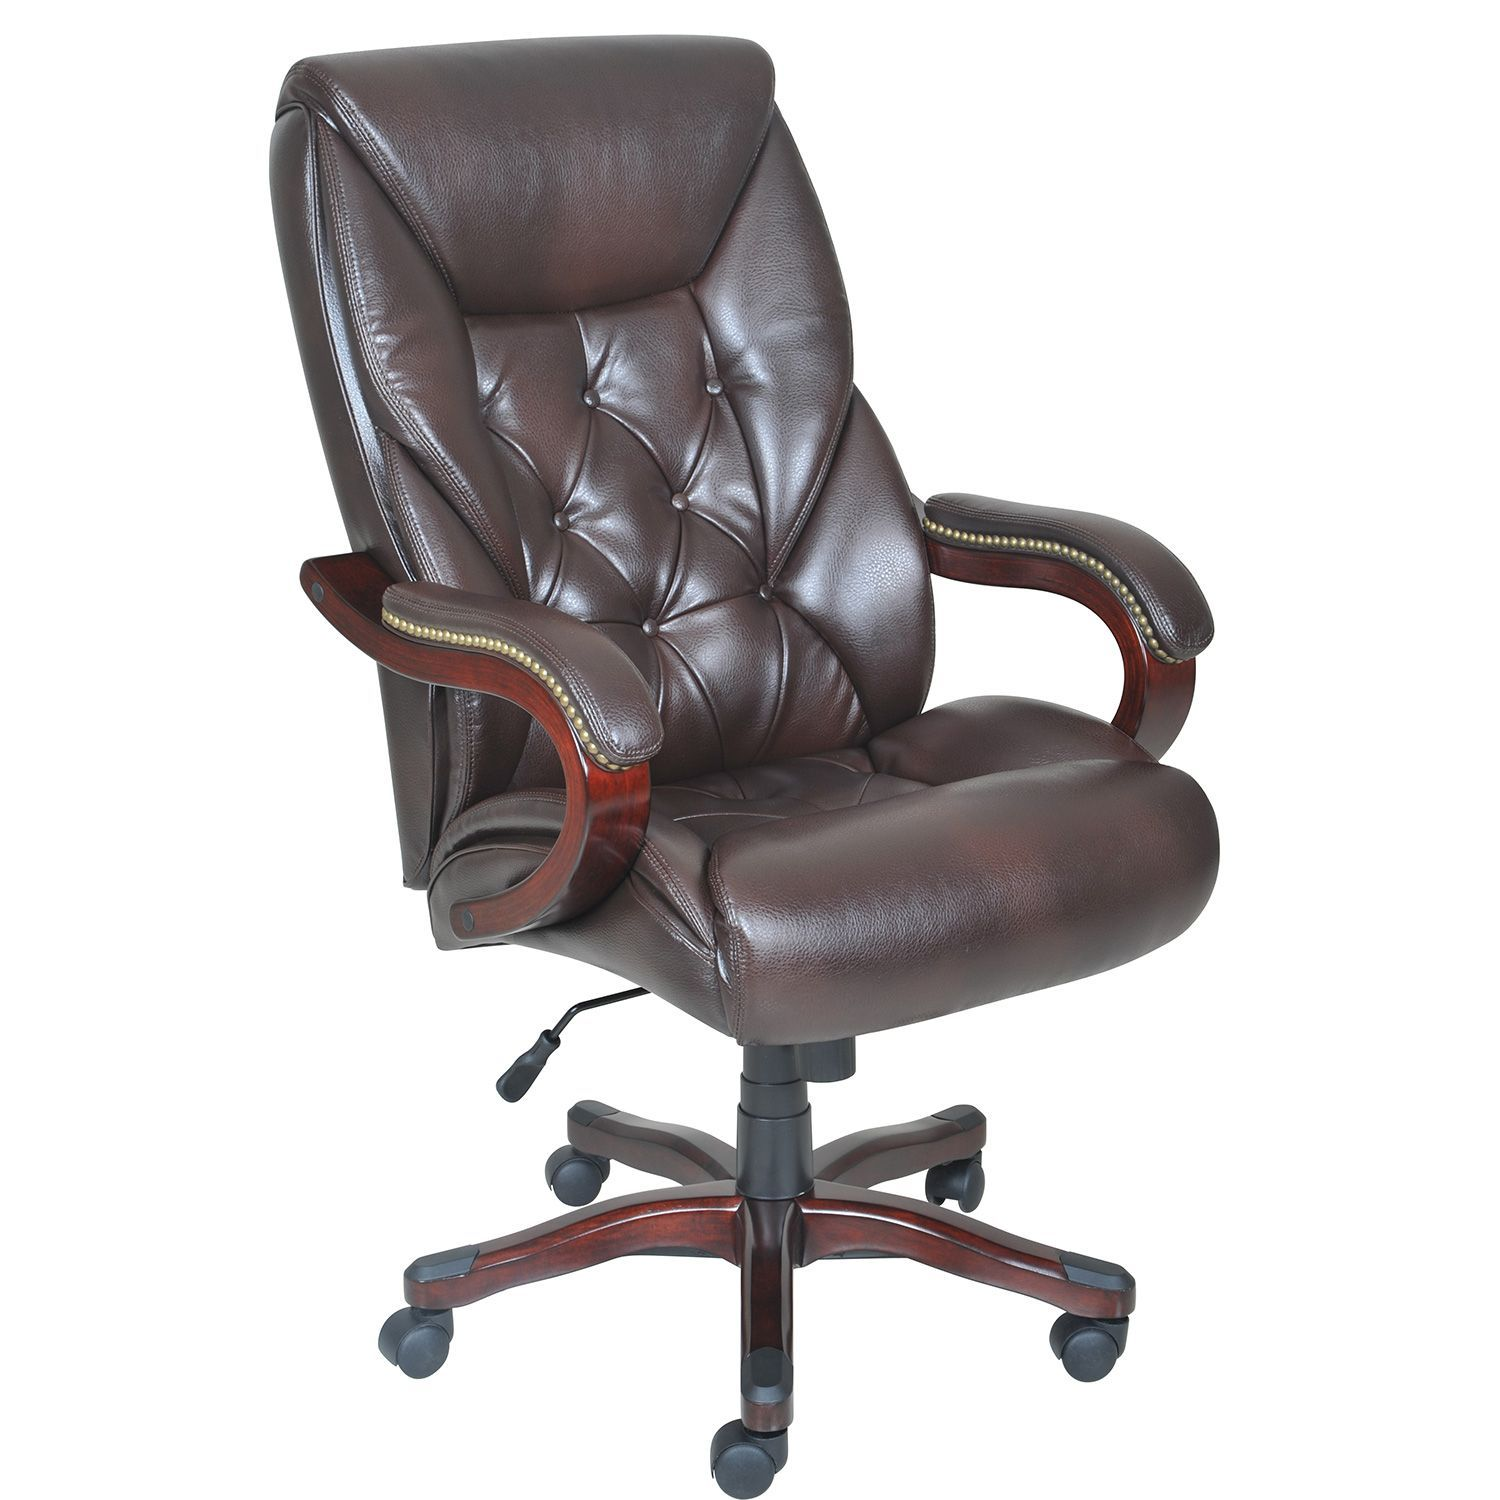 spin leather qlt spina club bonded ip hei fmt office chair managers wid manager sam sams air black chairs s